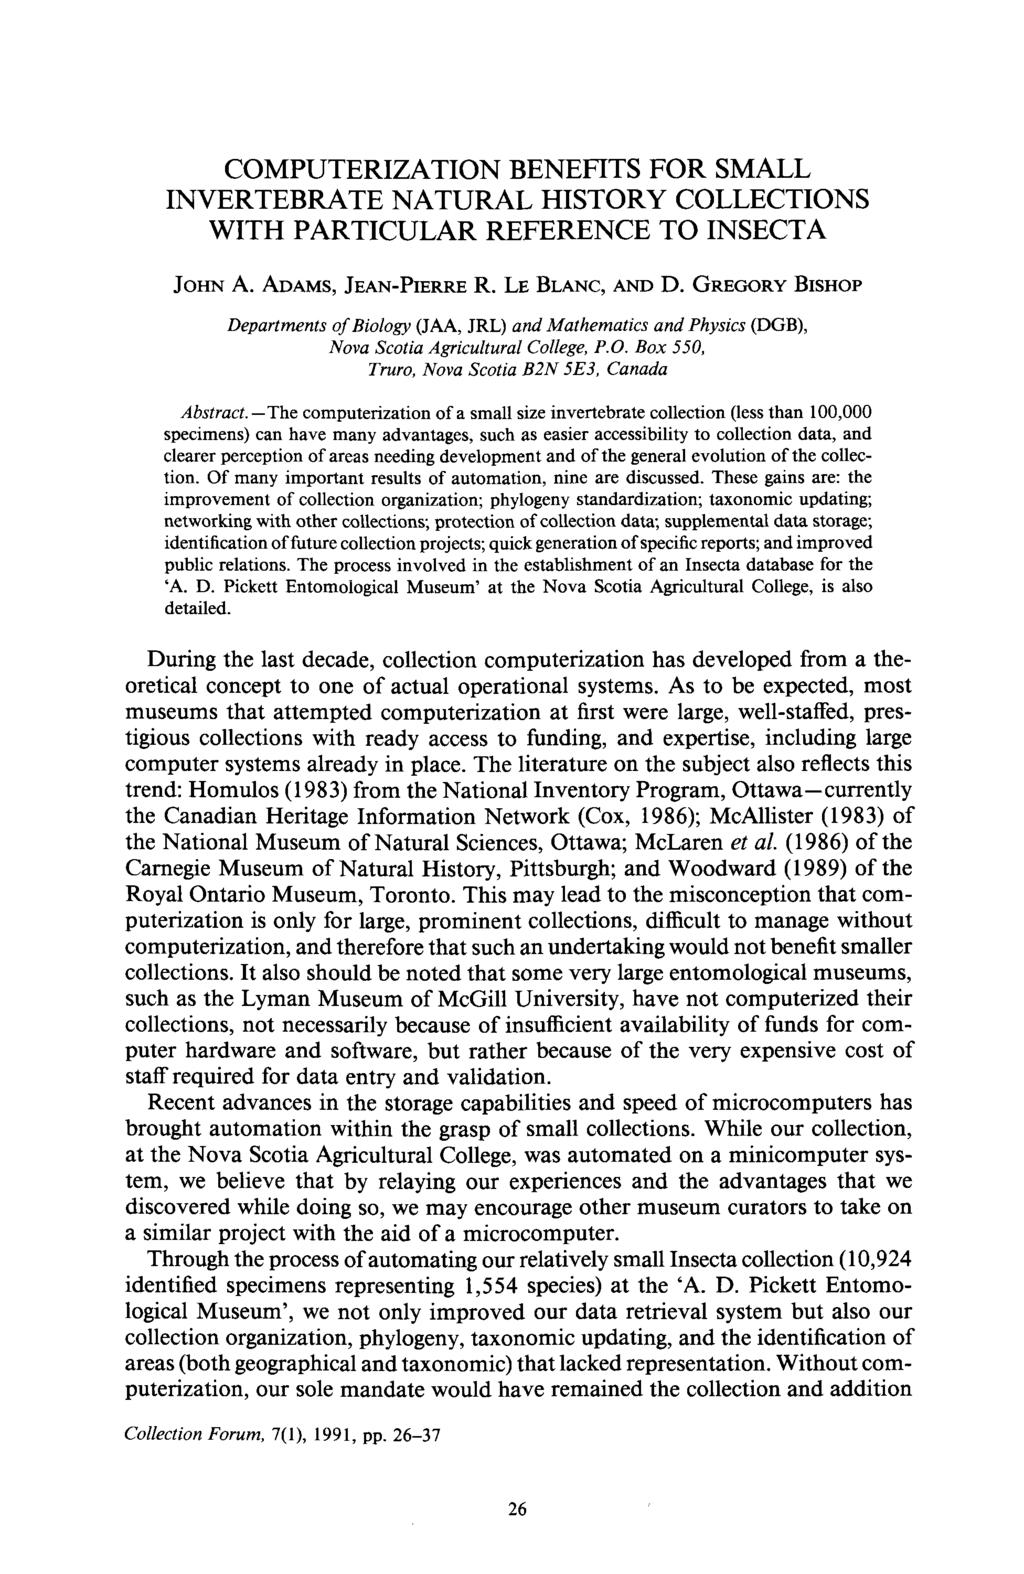 COMPUTERIZATION BENEFITS FOR SMALL INVERTEBRATE NATURAL HISTORY COLLECTIONS WITH PARTICULAR REFERENCE TO INSECTA JOHN A. ADAMS, JEAN-PIERRE R. LE BLANC, AND D.